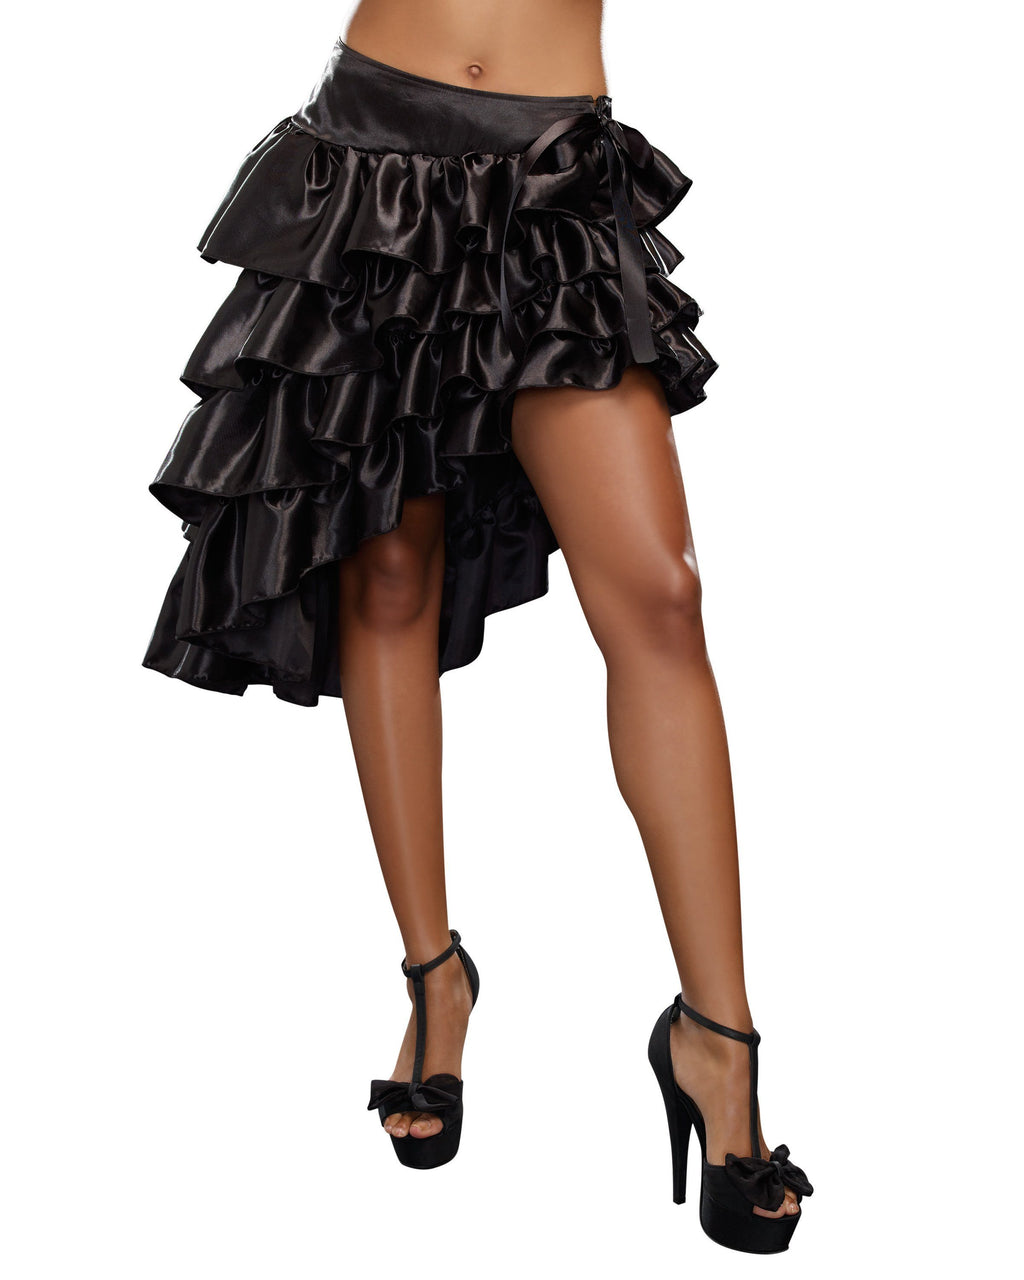 Ruffled Skirt Costume Accessory Dreamgirl Costume